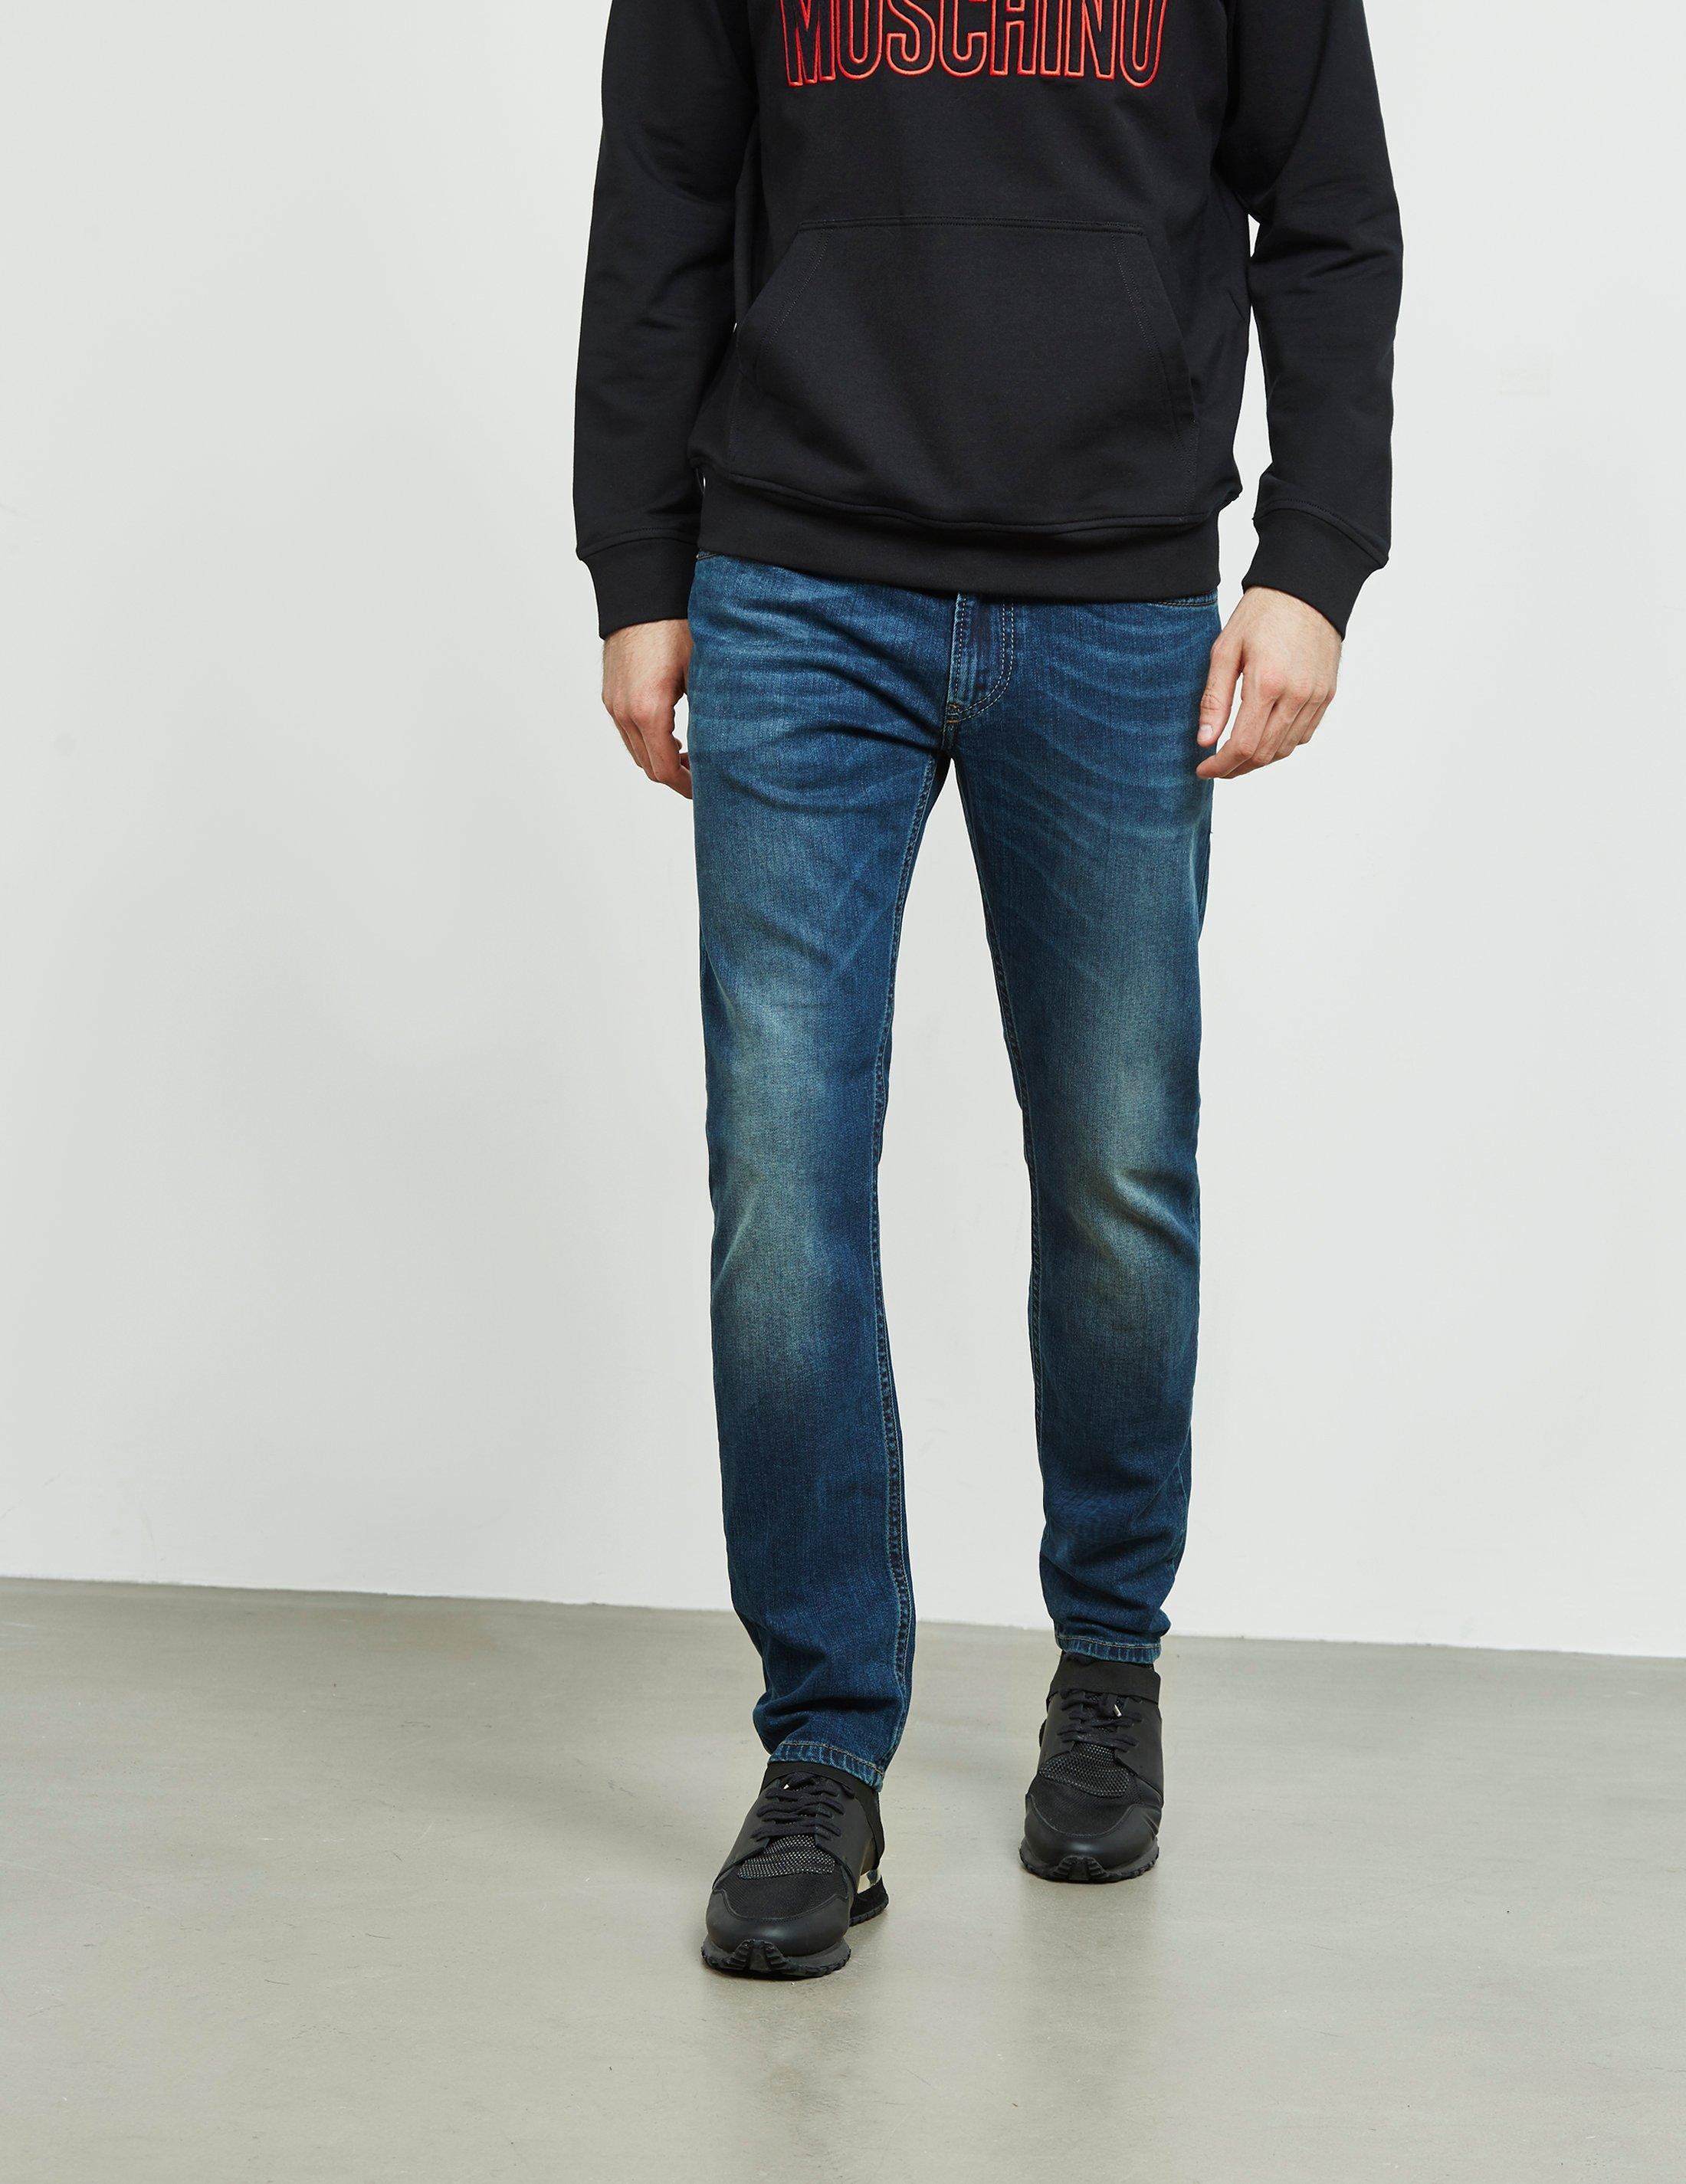 ca3cb05eb DIESEL Thommer Slim Jeans Blue in Blue for Men - Lyst